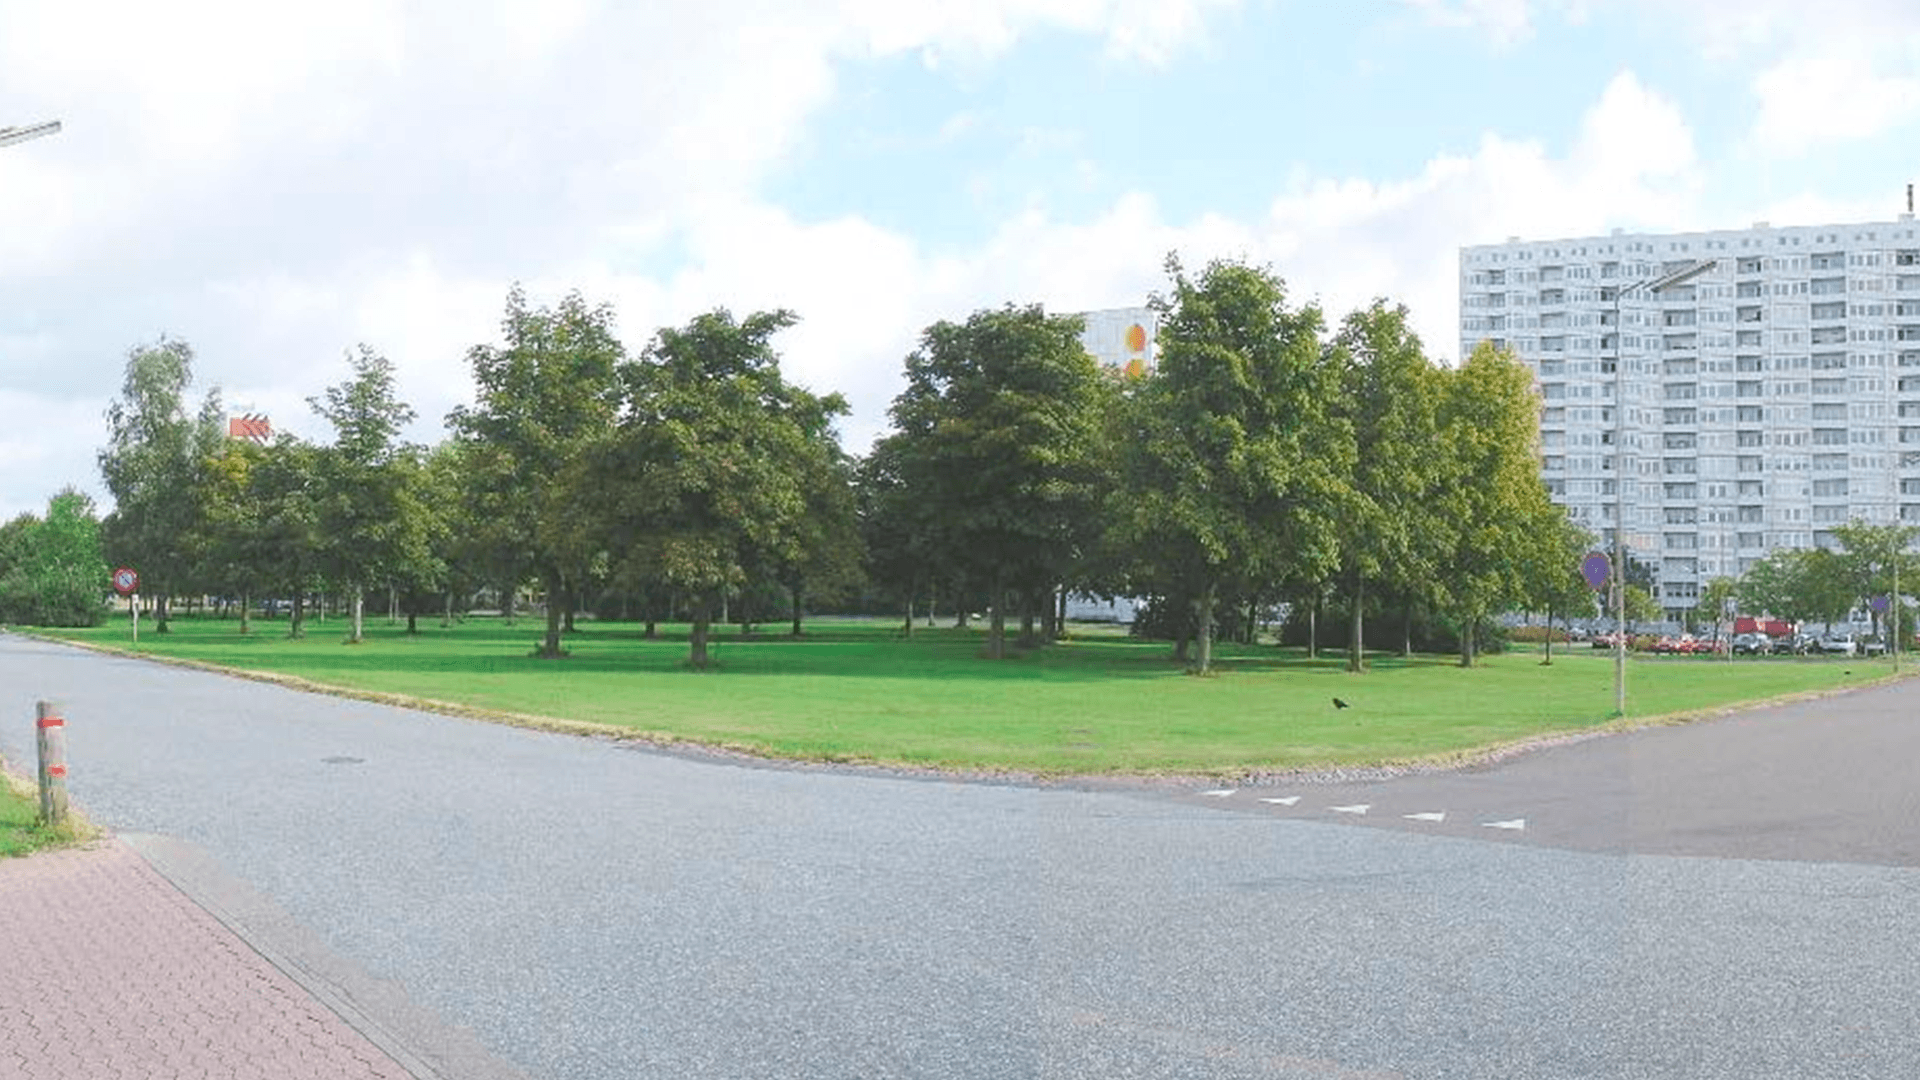 Bypark2